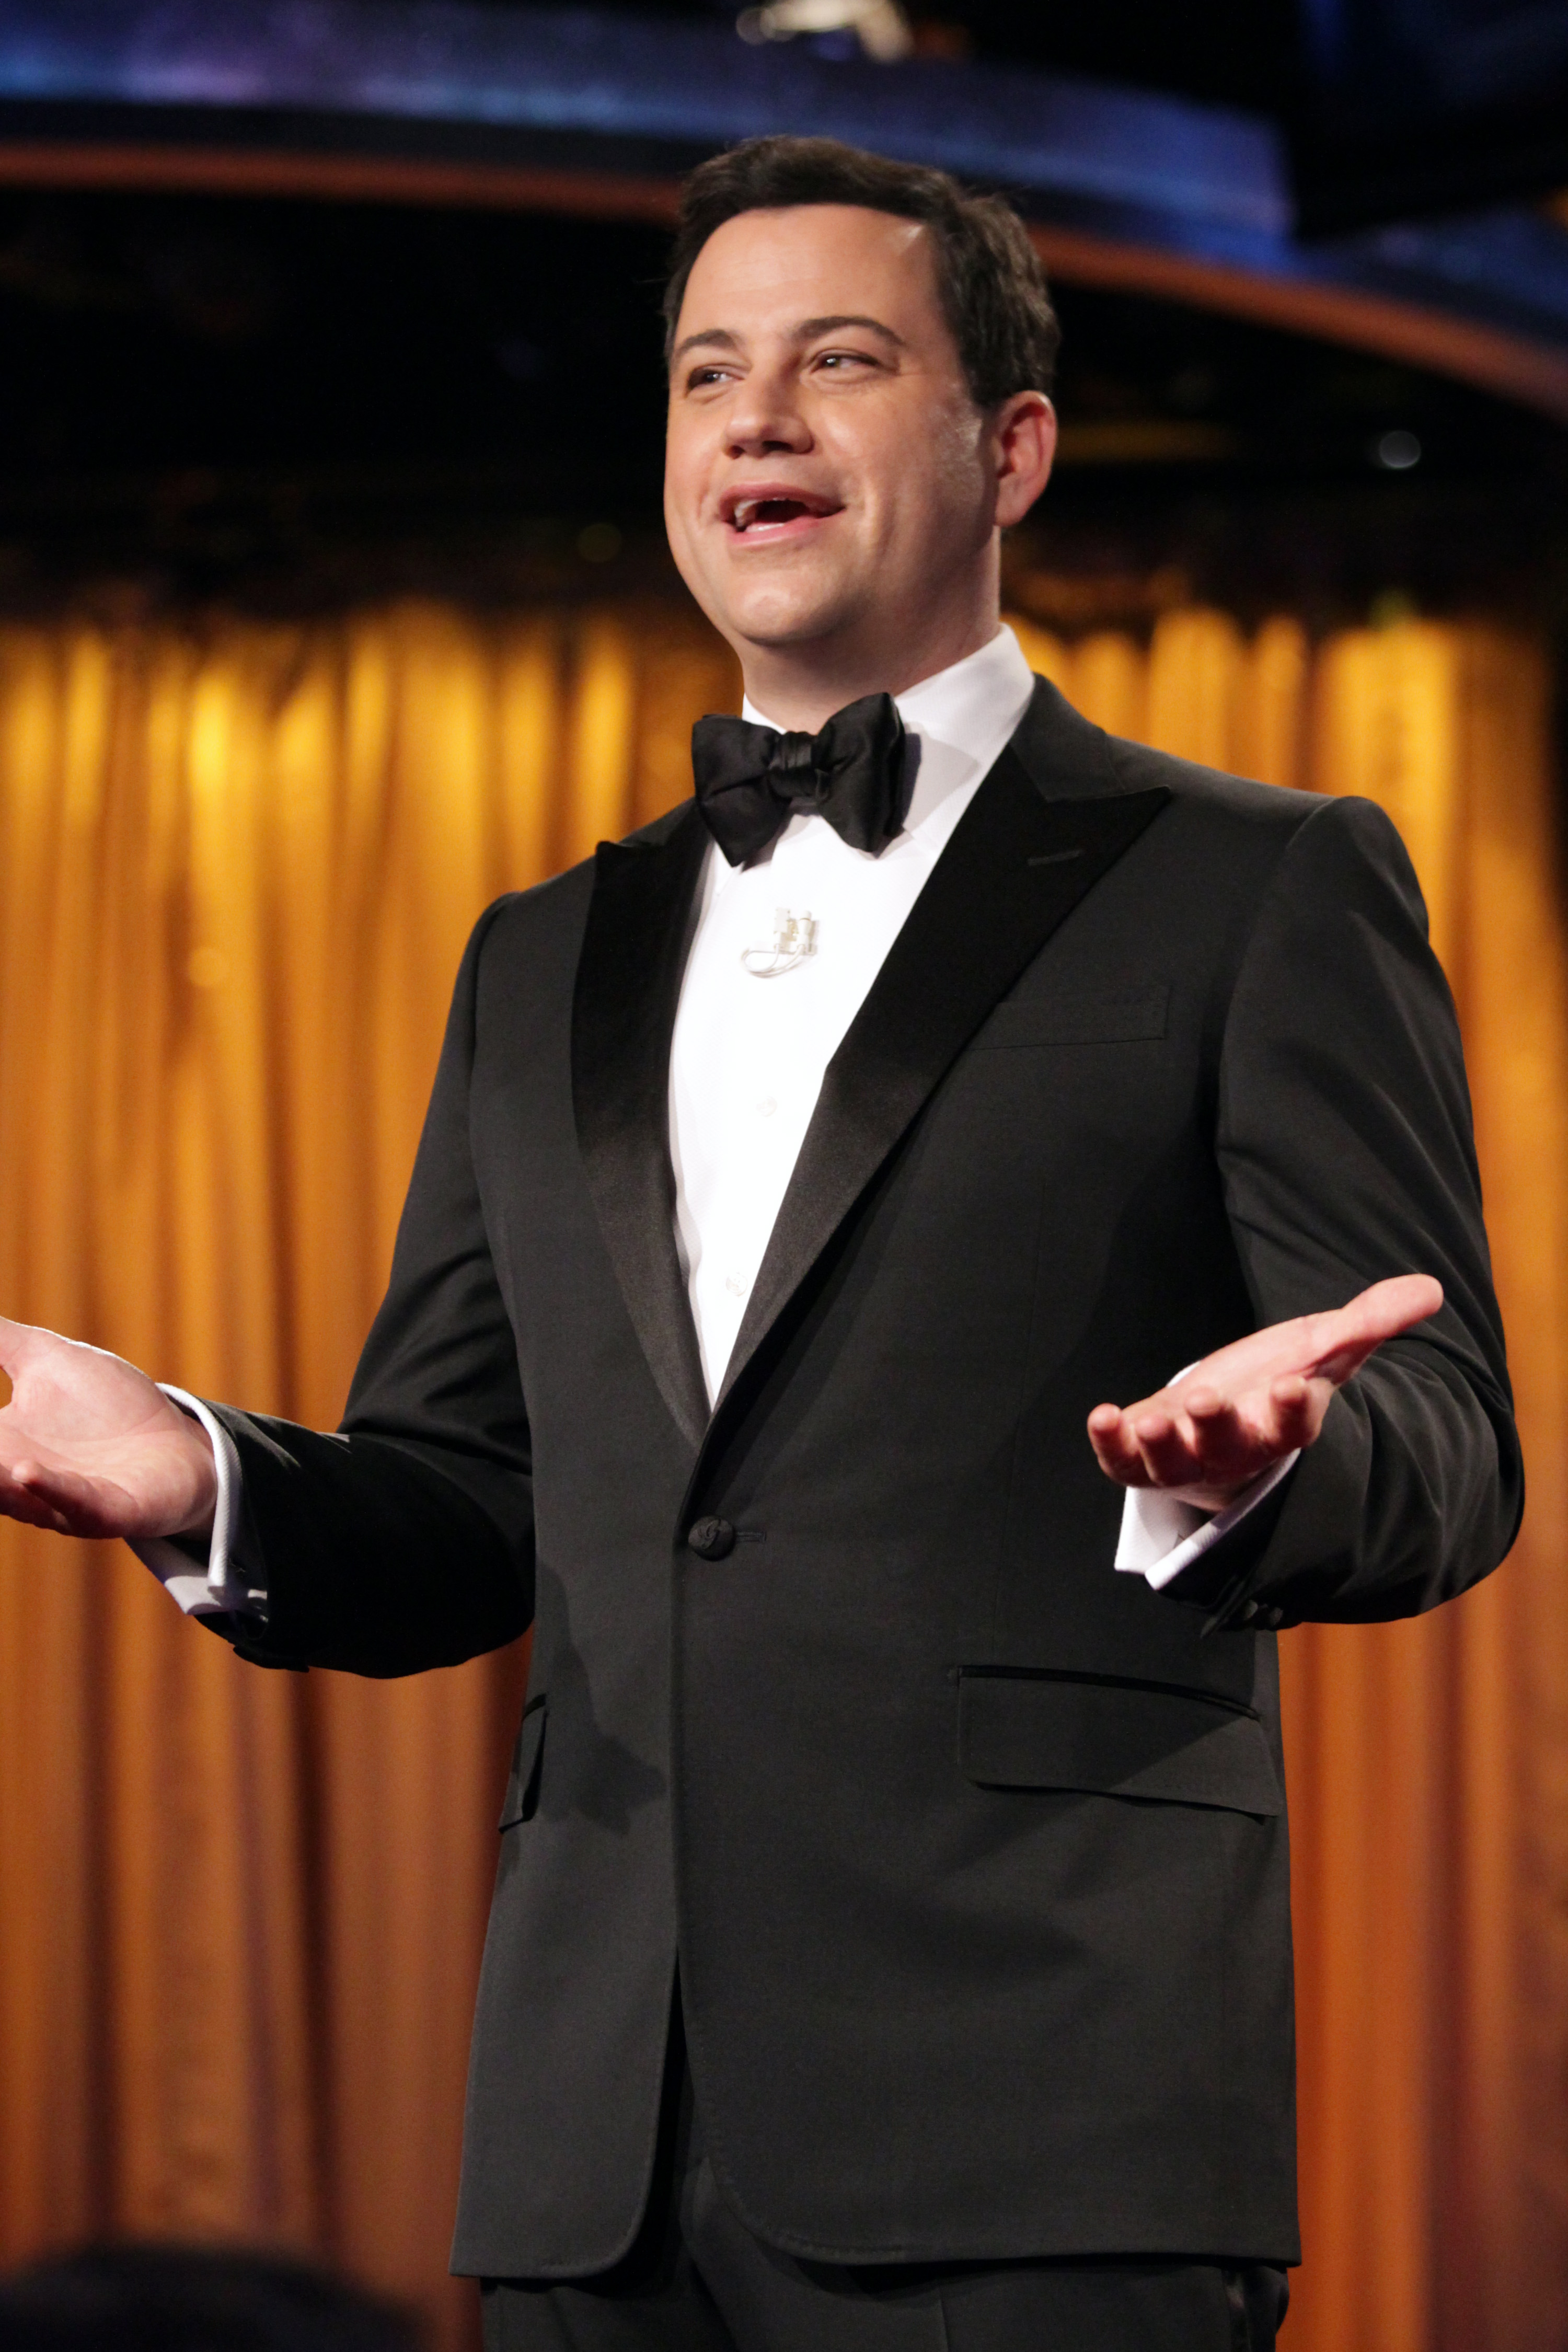 JIMMY KIMMEL LIVE: AFTER THE OSCARS® airs Sunday, Feb. 22 at 12:05 a.m. ET/PT,